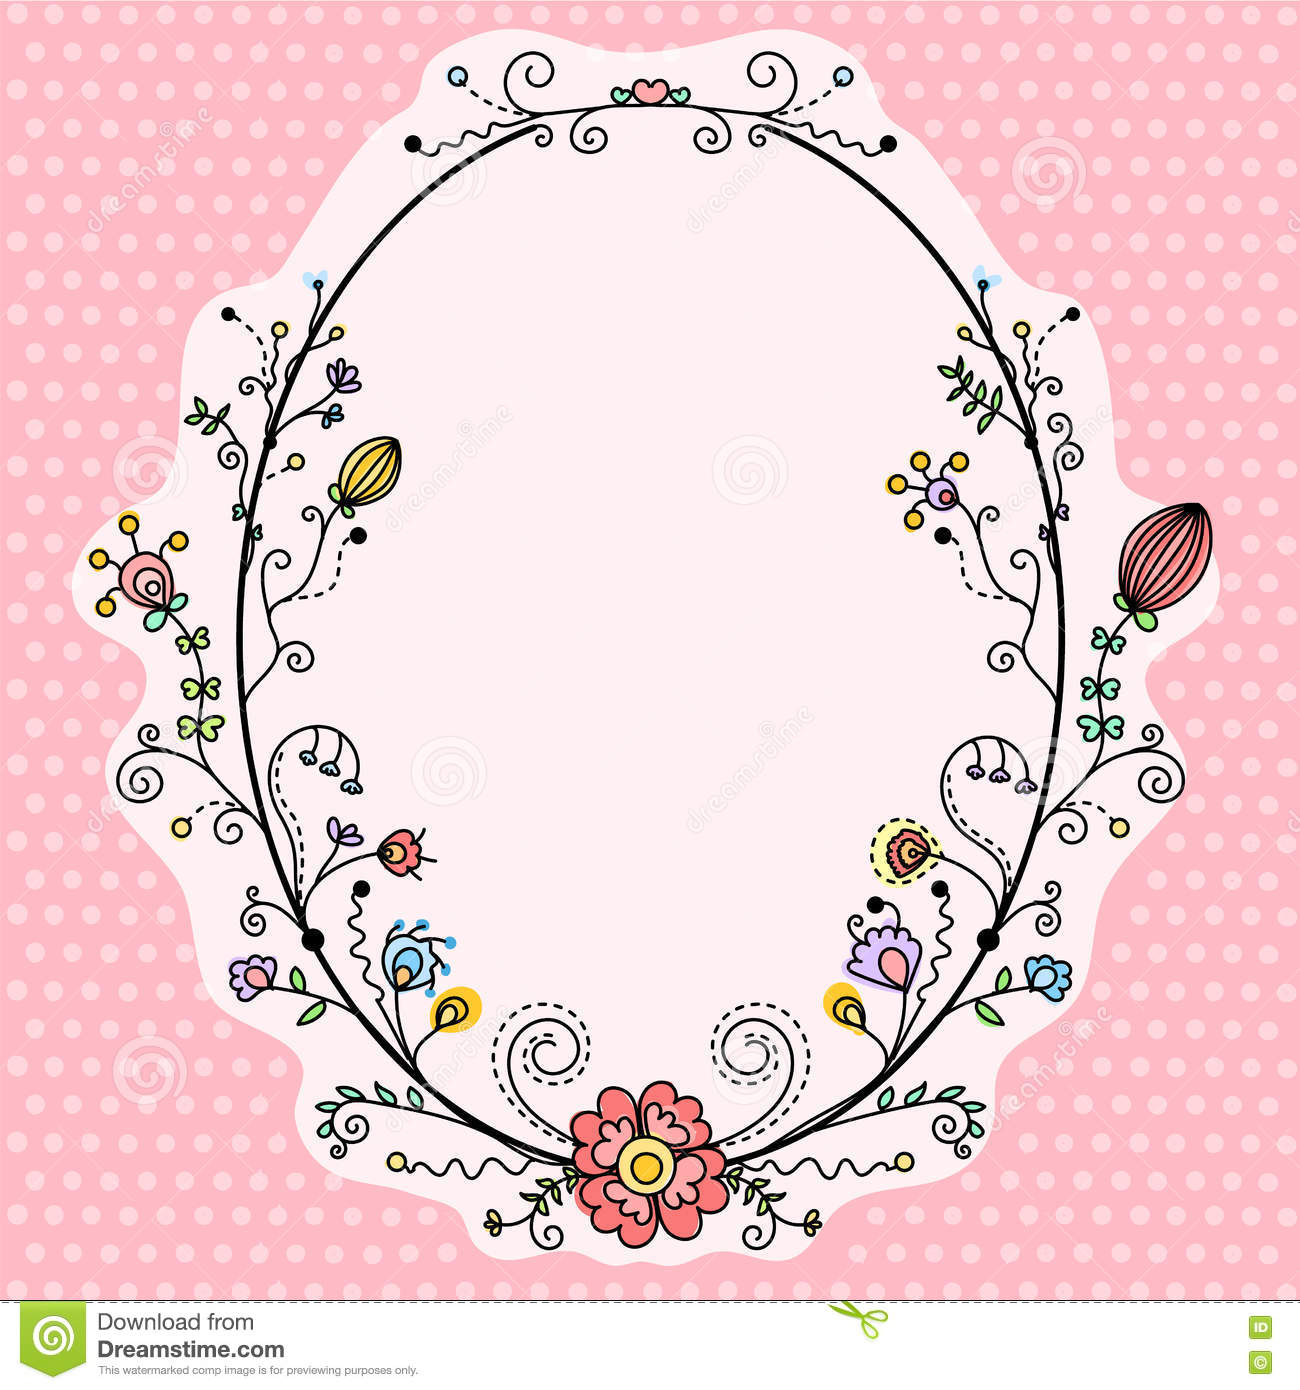 Decorative Black Flower Border Stock Image: Vector Set Of Decorative Elements Stock Vector